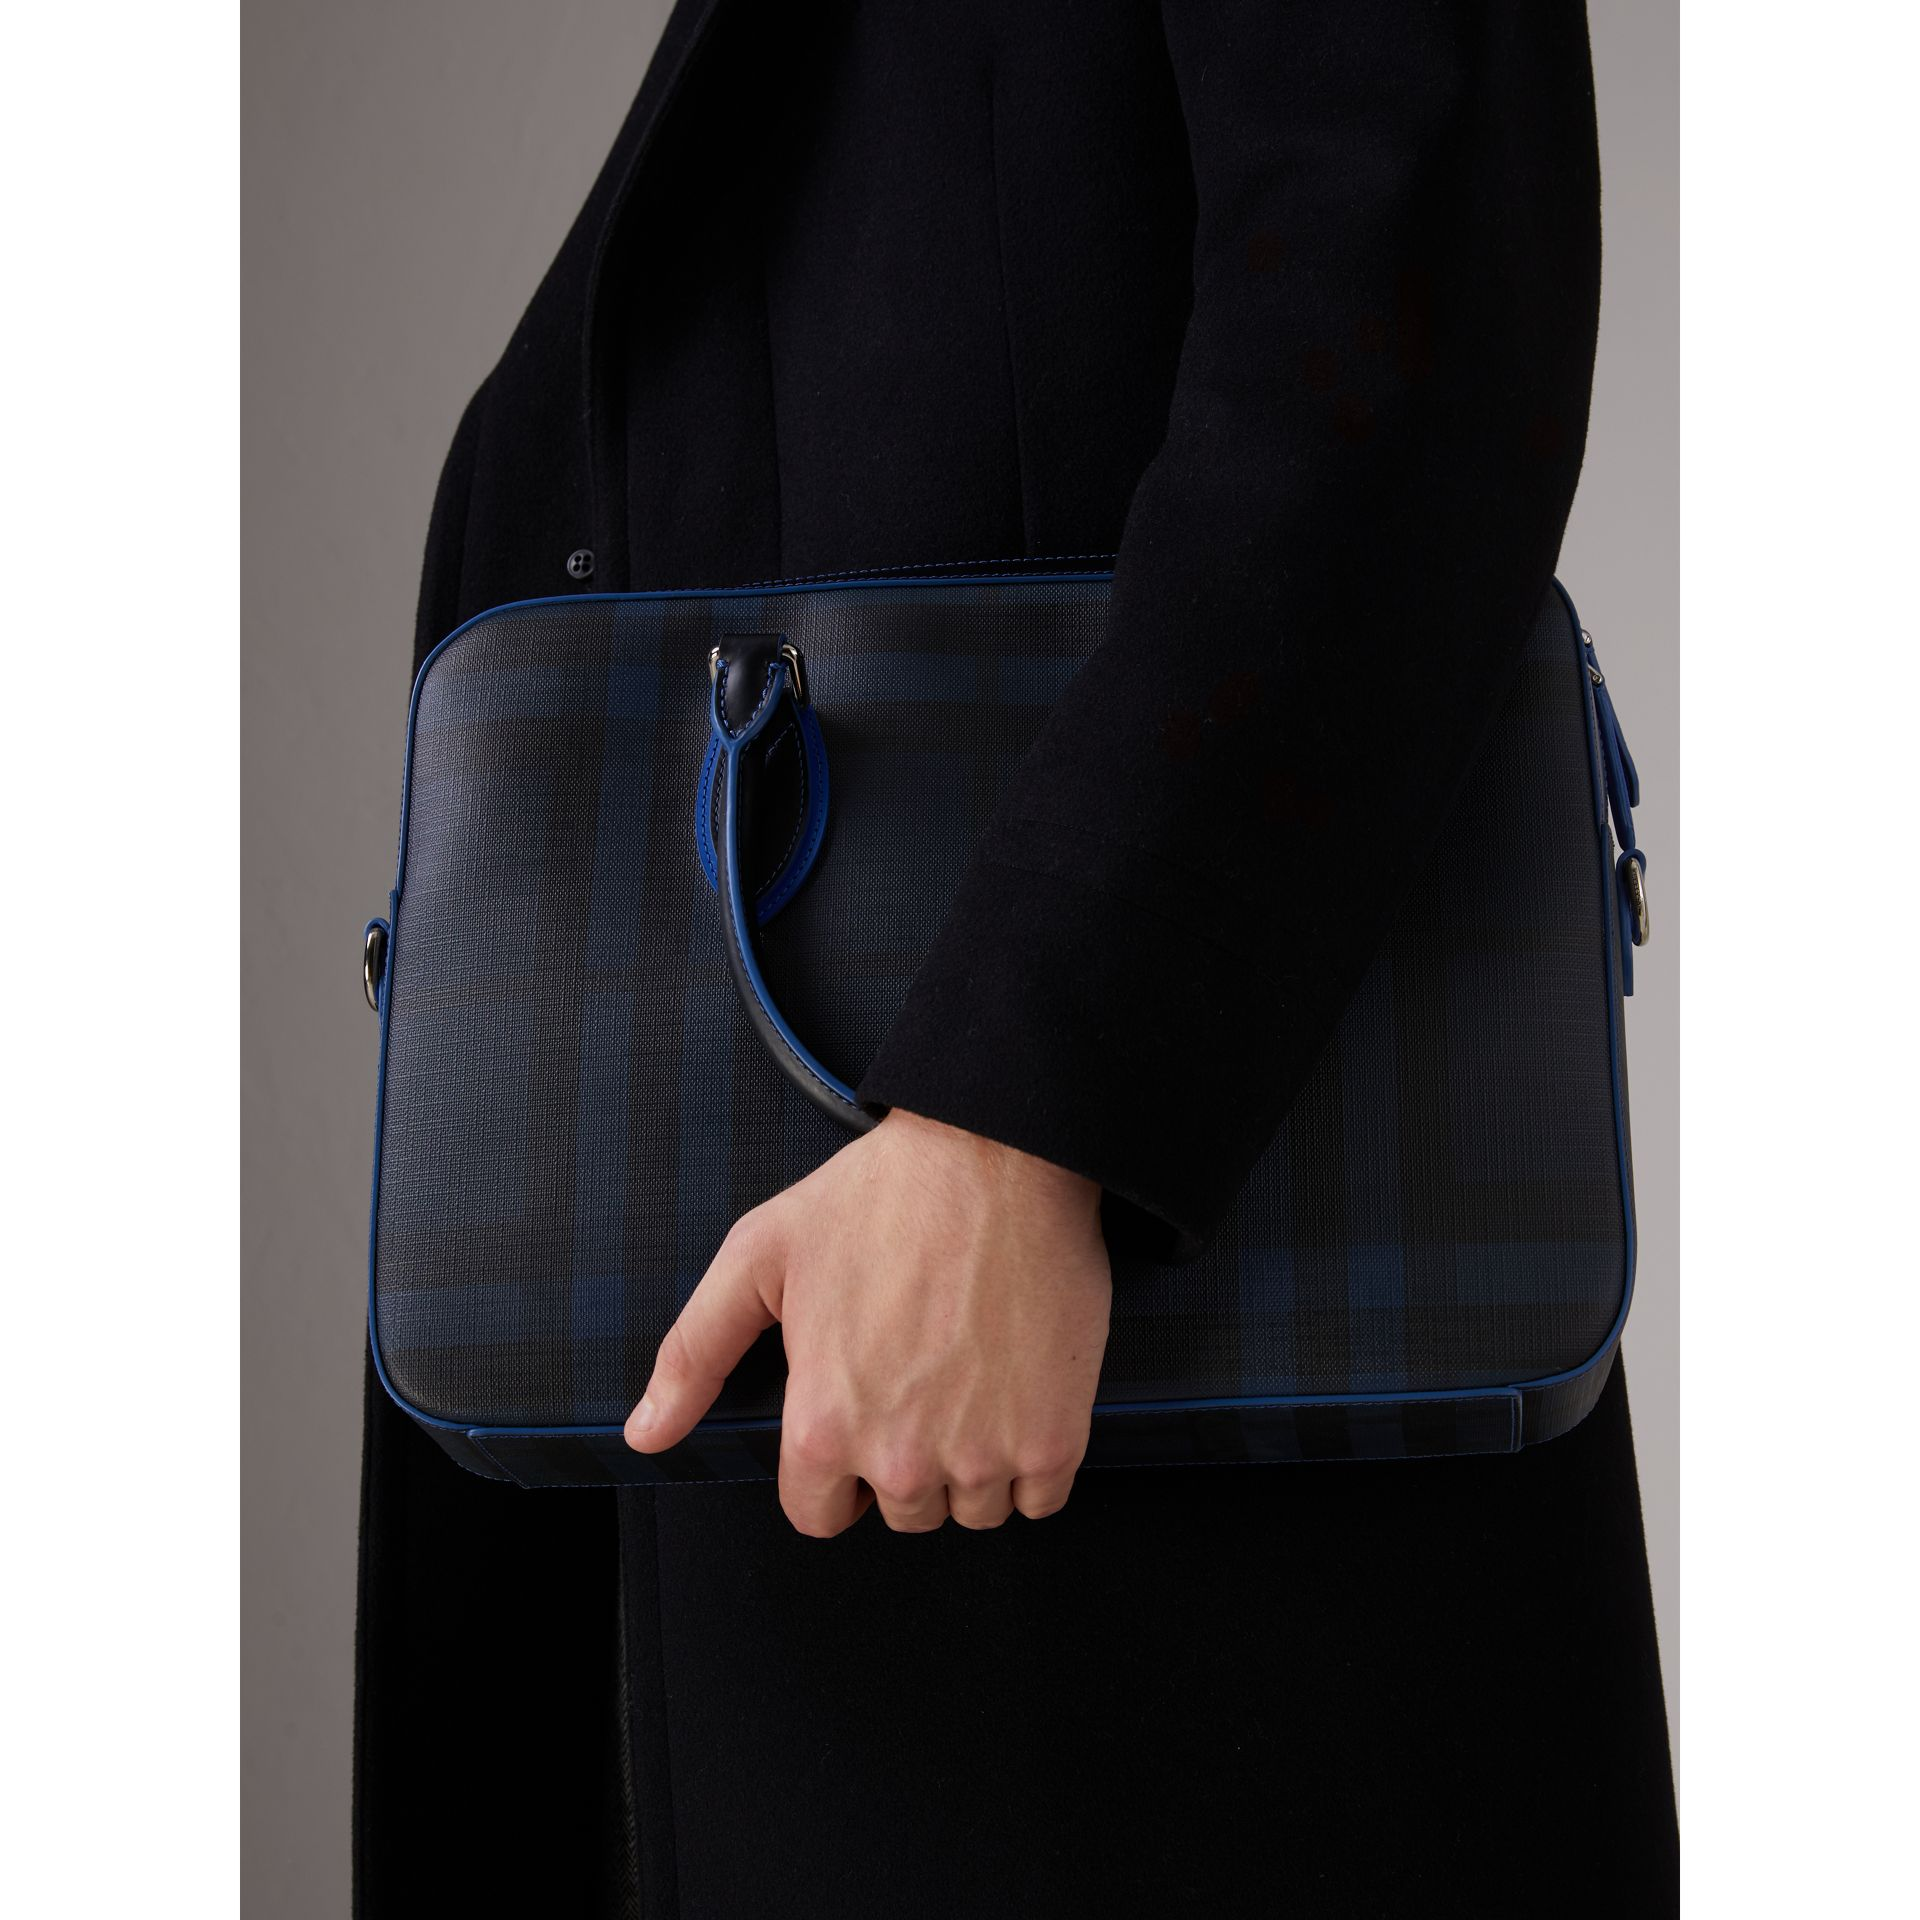 Medium Leather Trim London Check Briefcase in Navy/blue - Men | Burberry United Kingdom - gallery image 2